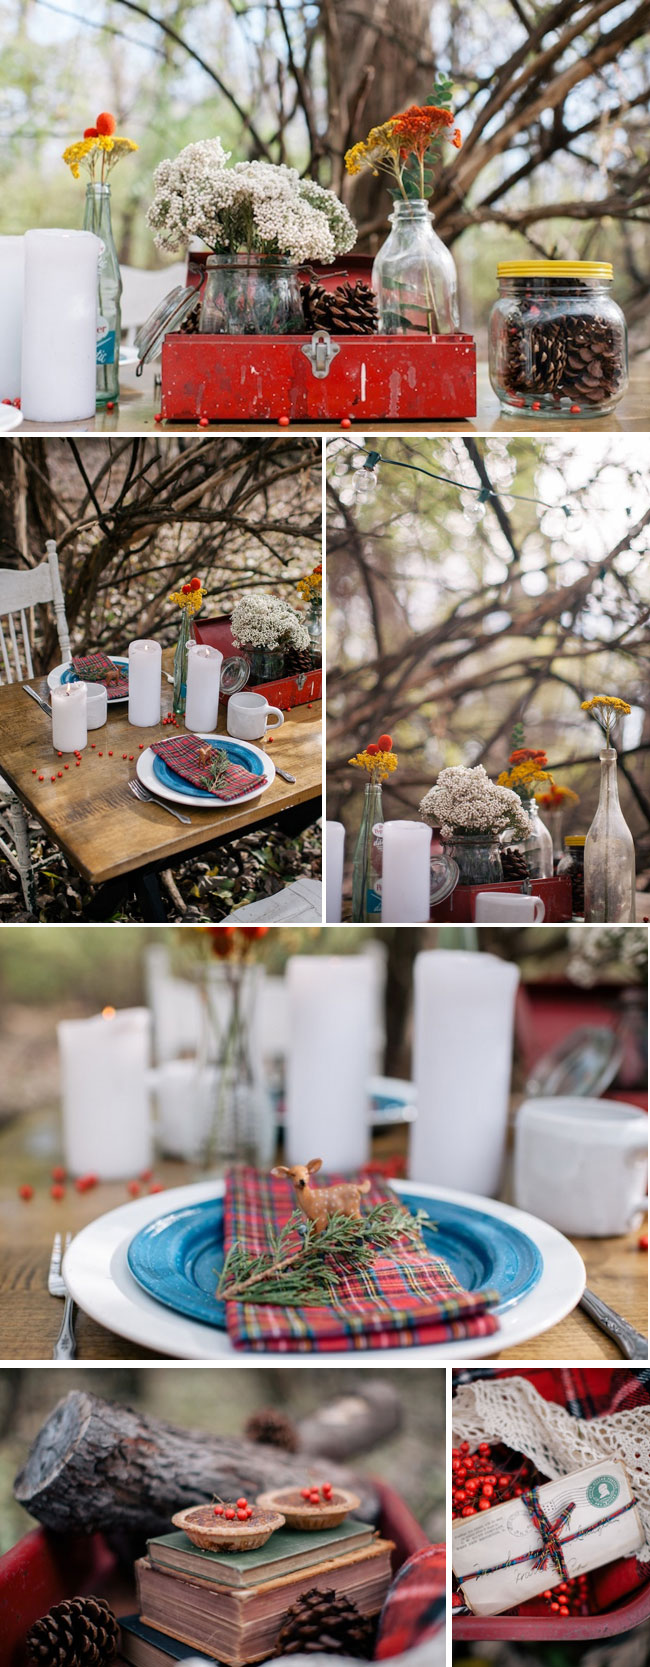 rustic elopement details: pinecones in mason jar, checkered napkins with deer figurine, pumpkin tarts with holly berries